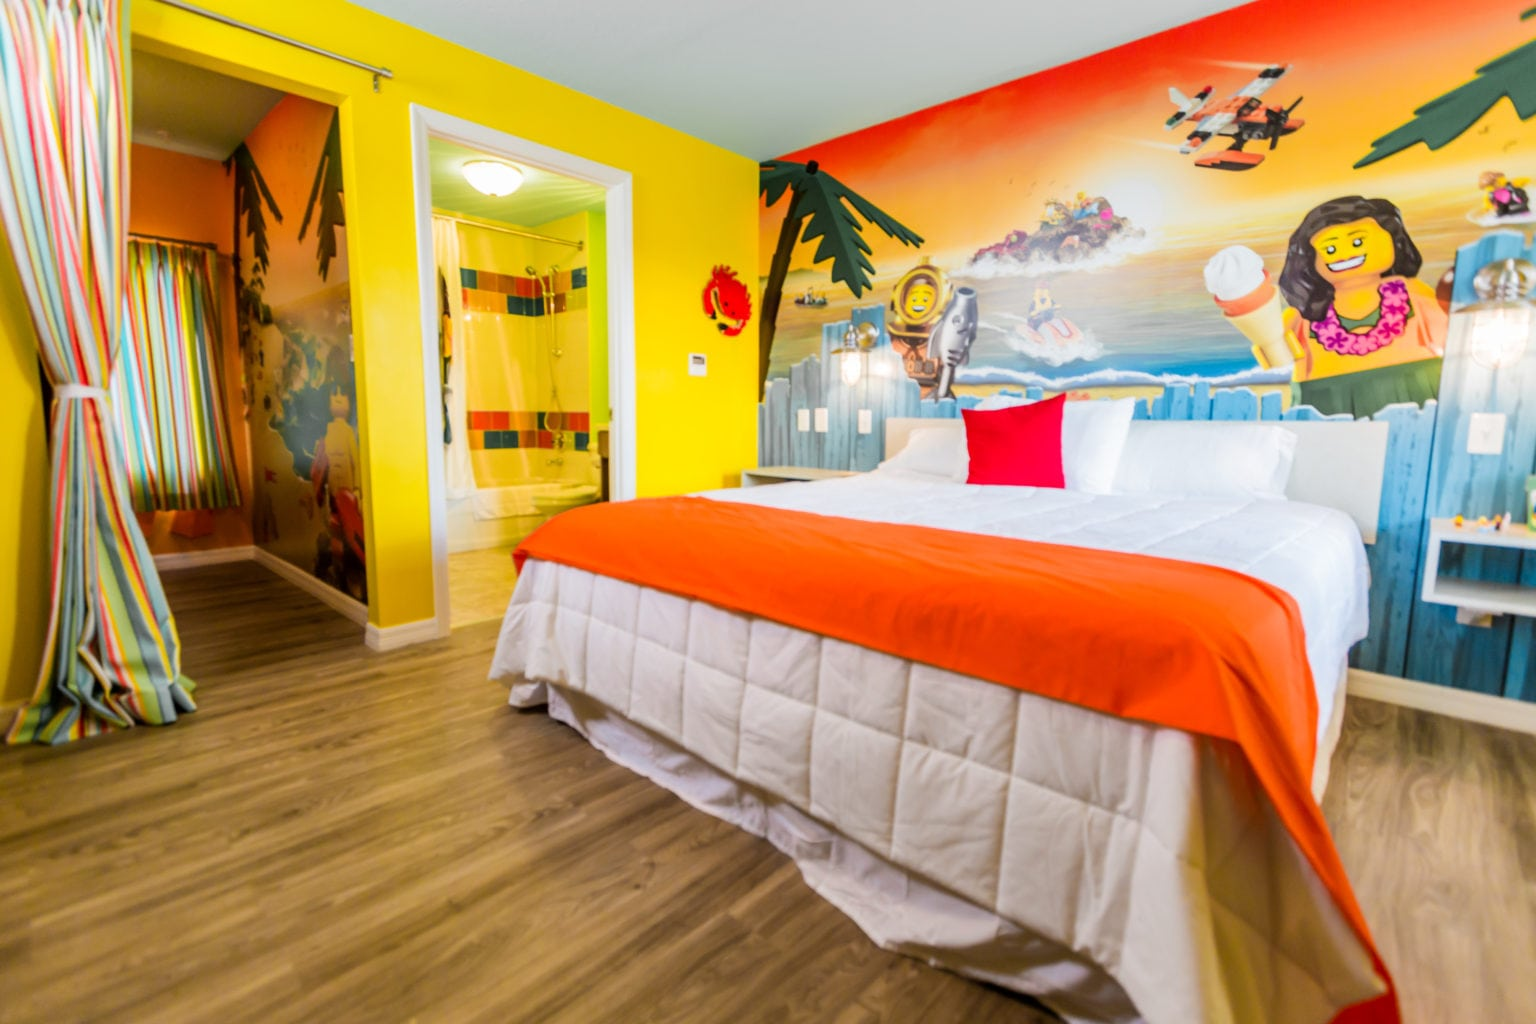 Tampa-Bay-Parenting-Staycation-Family-Friendly-Beaches-LEgoland-Beach-Retreat